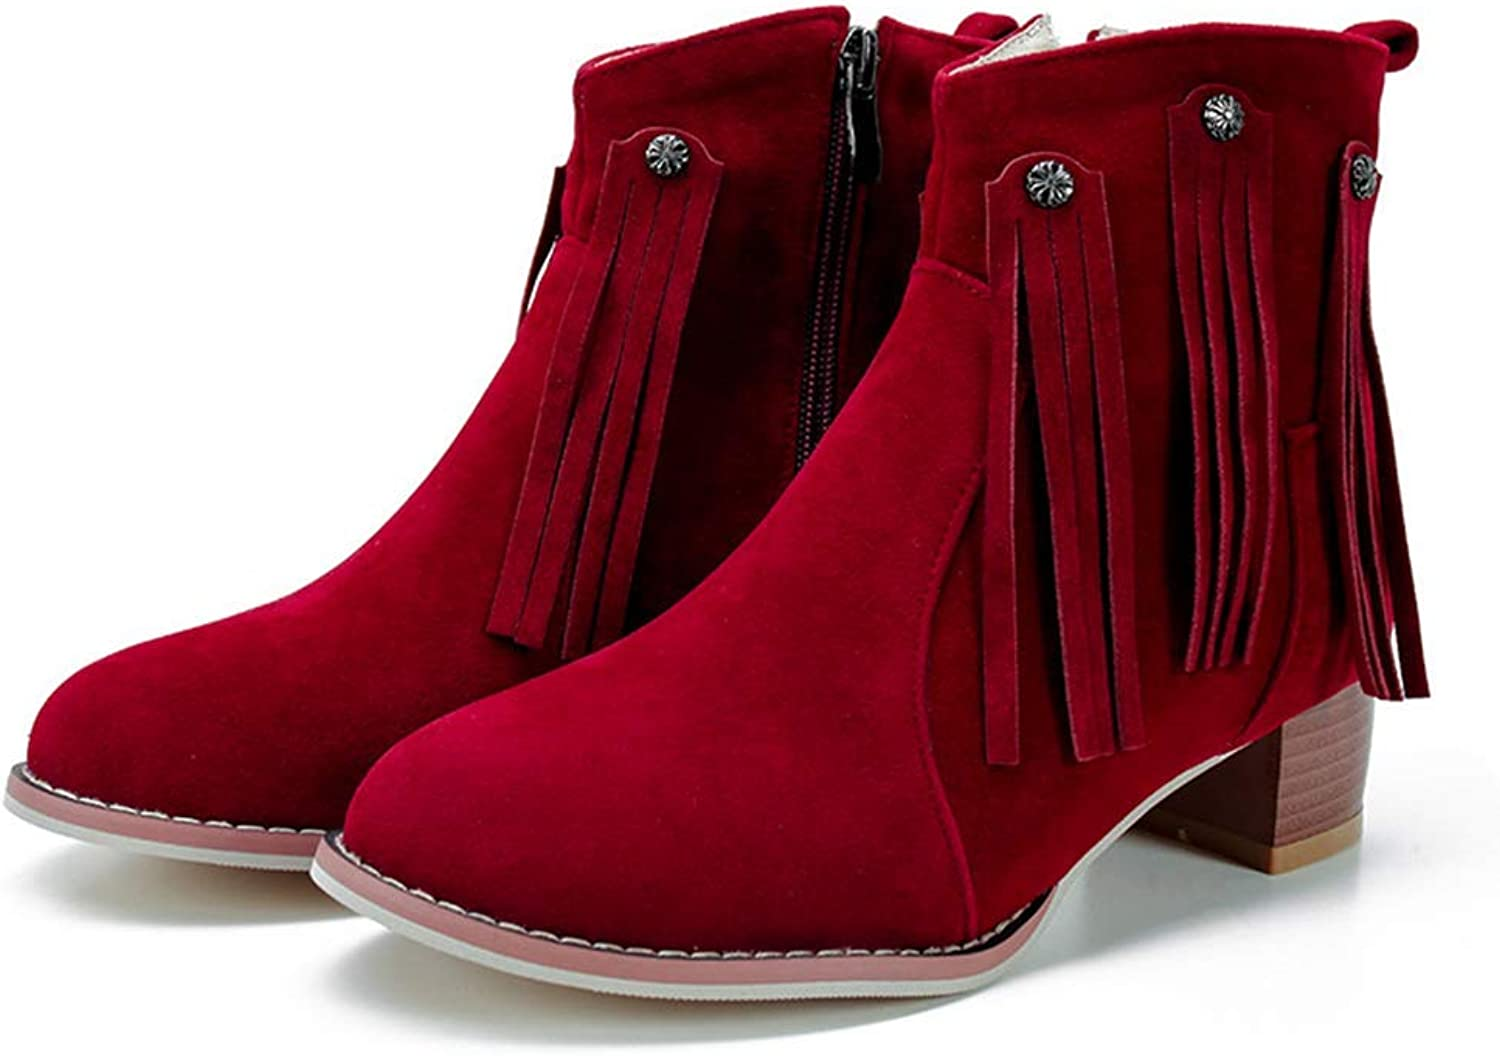 Webb Perkin Women Casual Round Toe Chunky Heel Side Zipper Booties Party Short Boots Lady Fashion Tassels Ankle Boots